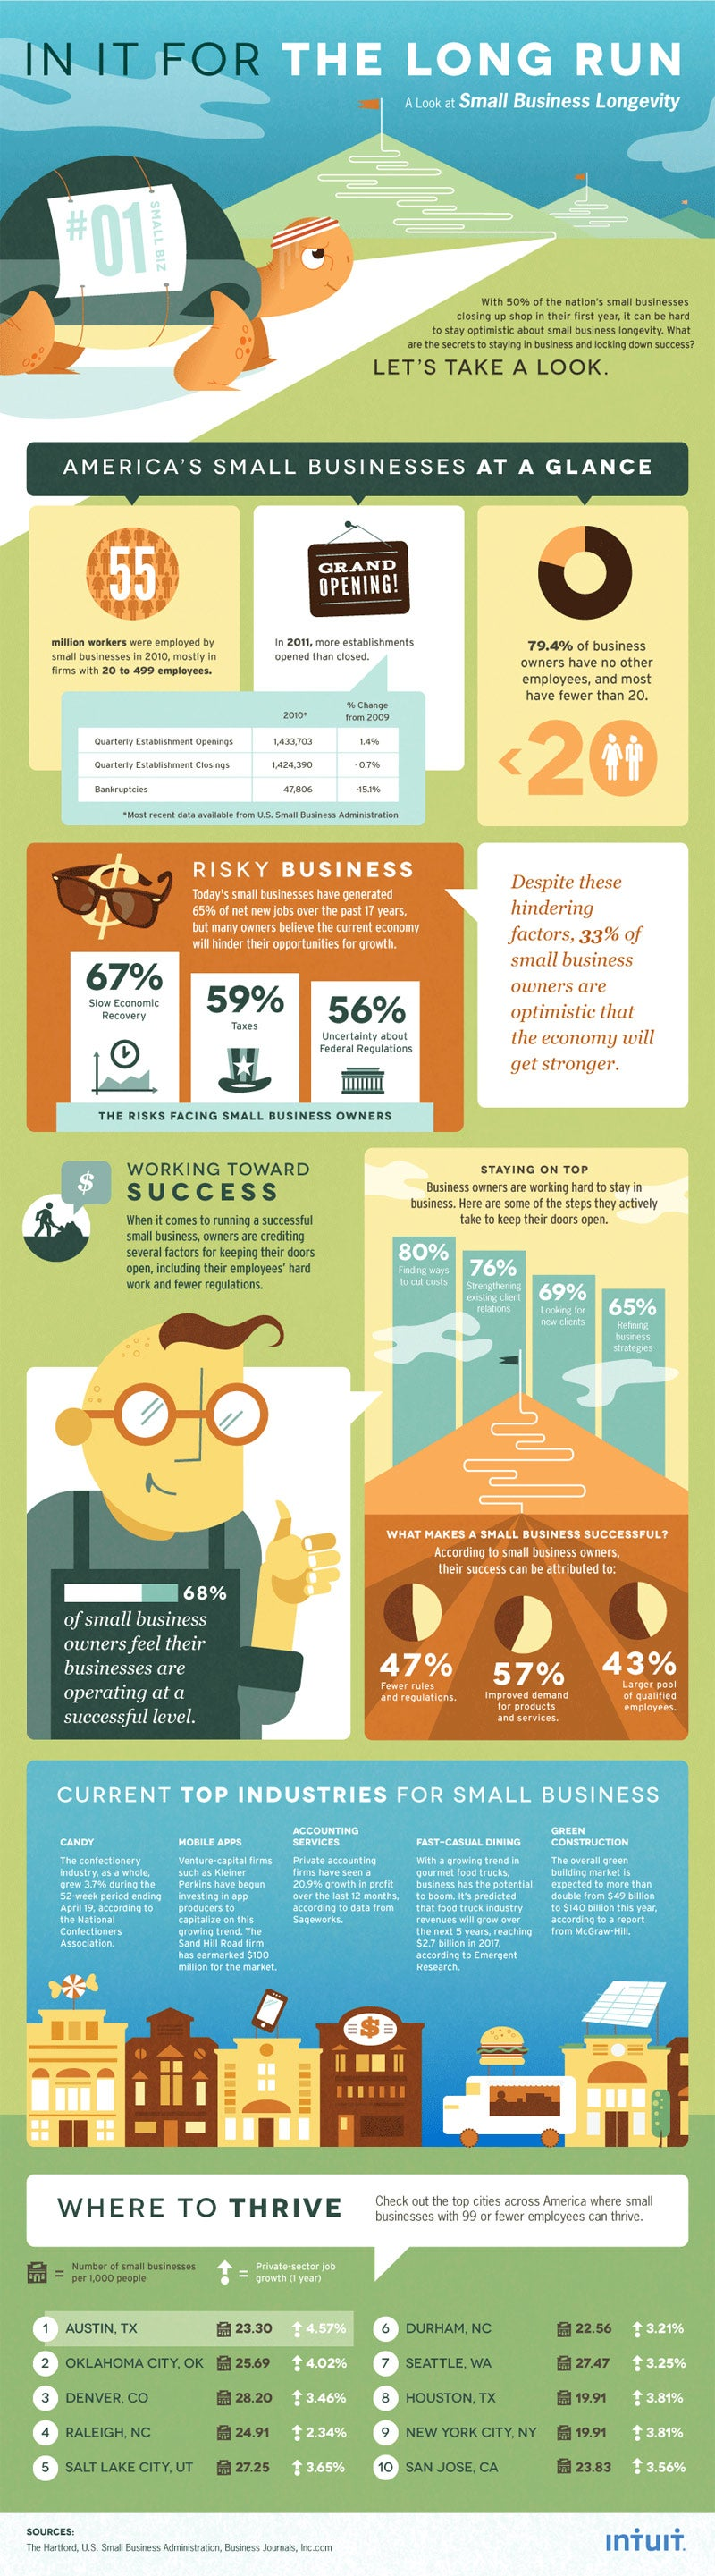 Inside Small Business Growth: Top Industries and Other Startup Secrets (Infographic)